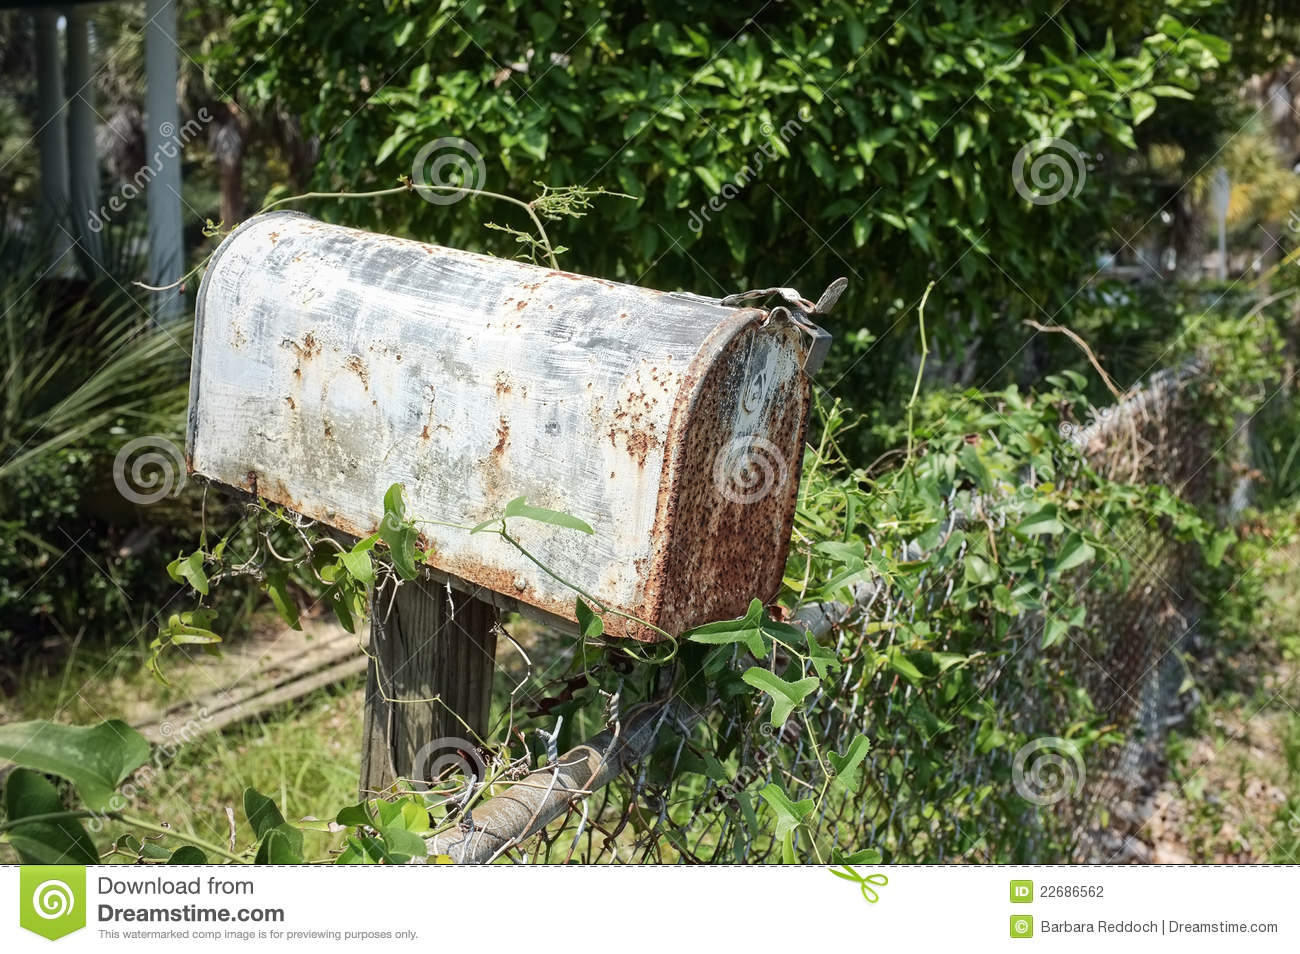 Rusty mailbox next to a chain link fence. Vines and overgrown yard in ...